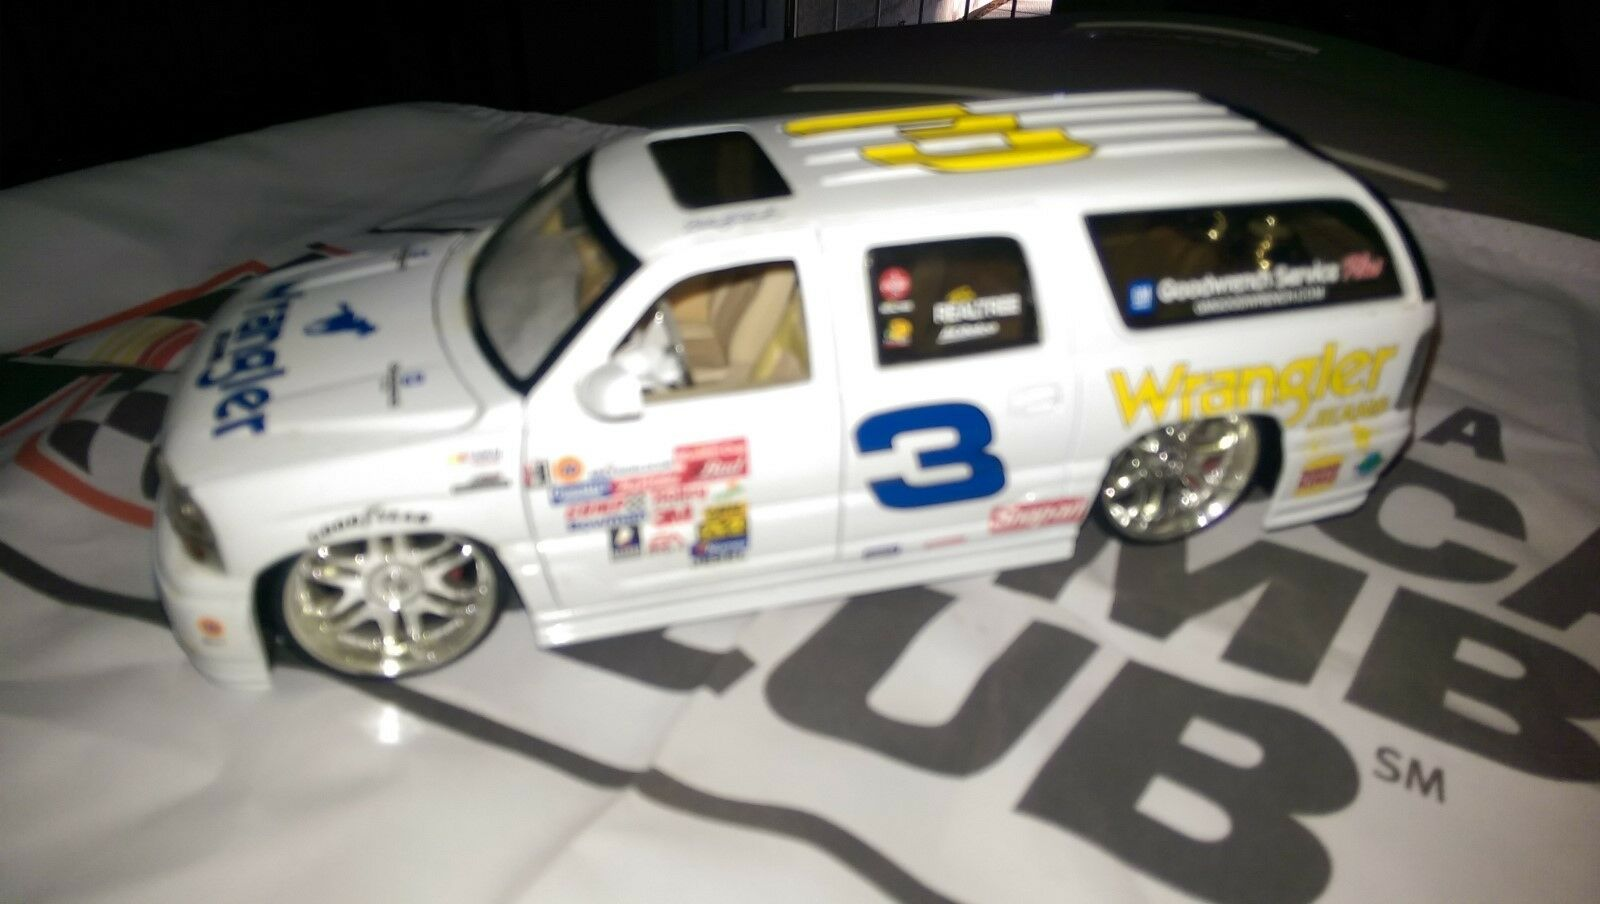 3 Dale Earnhardt CUSTOM MADE 2002 GMC YUKON 1/24 SCALE